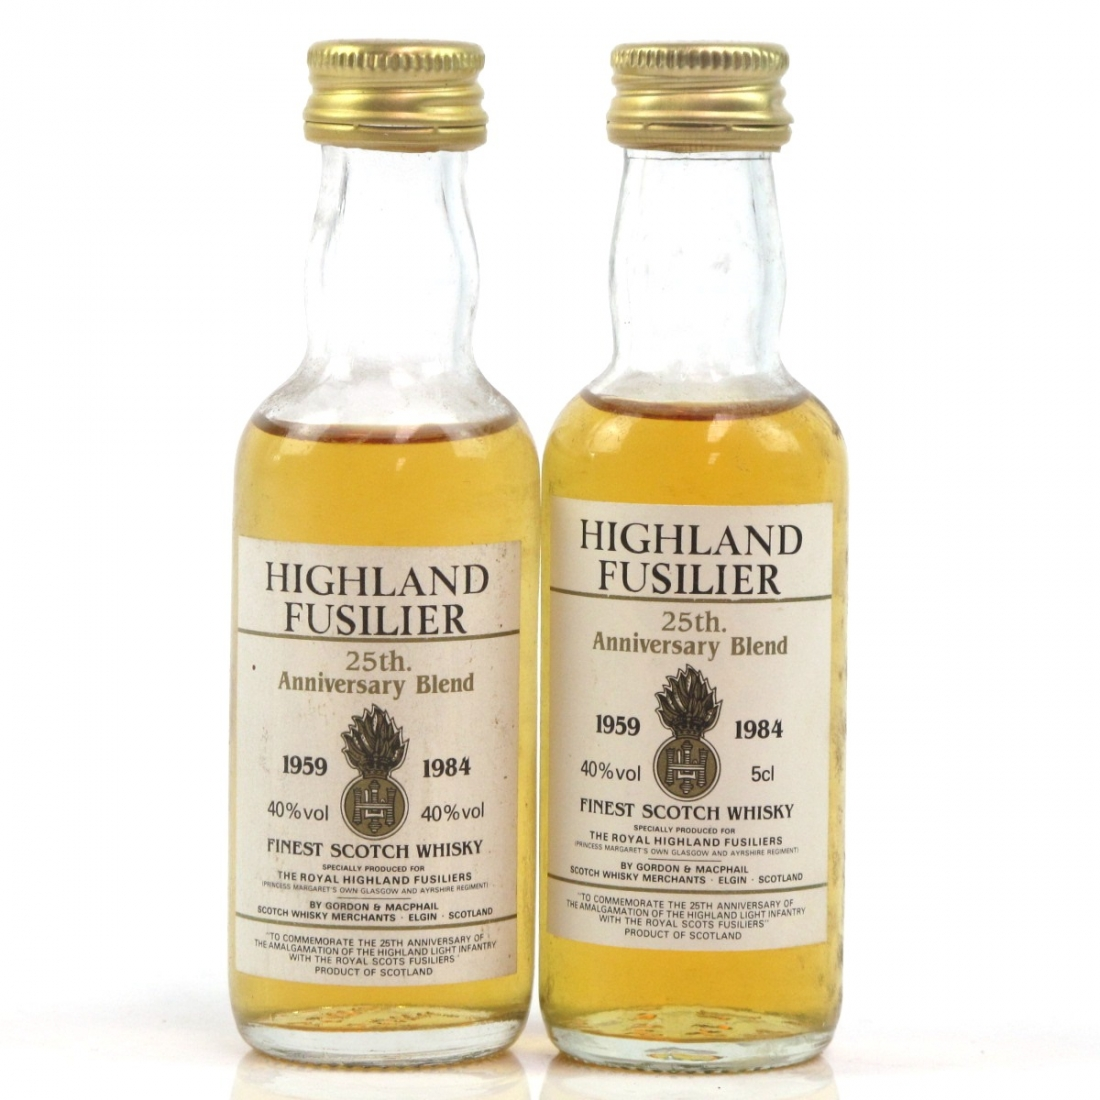 Highland Fusilier 25th Anniversary Blend 2 x 5cl